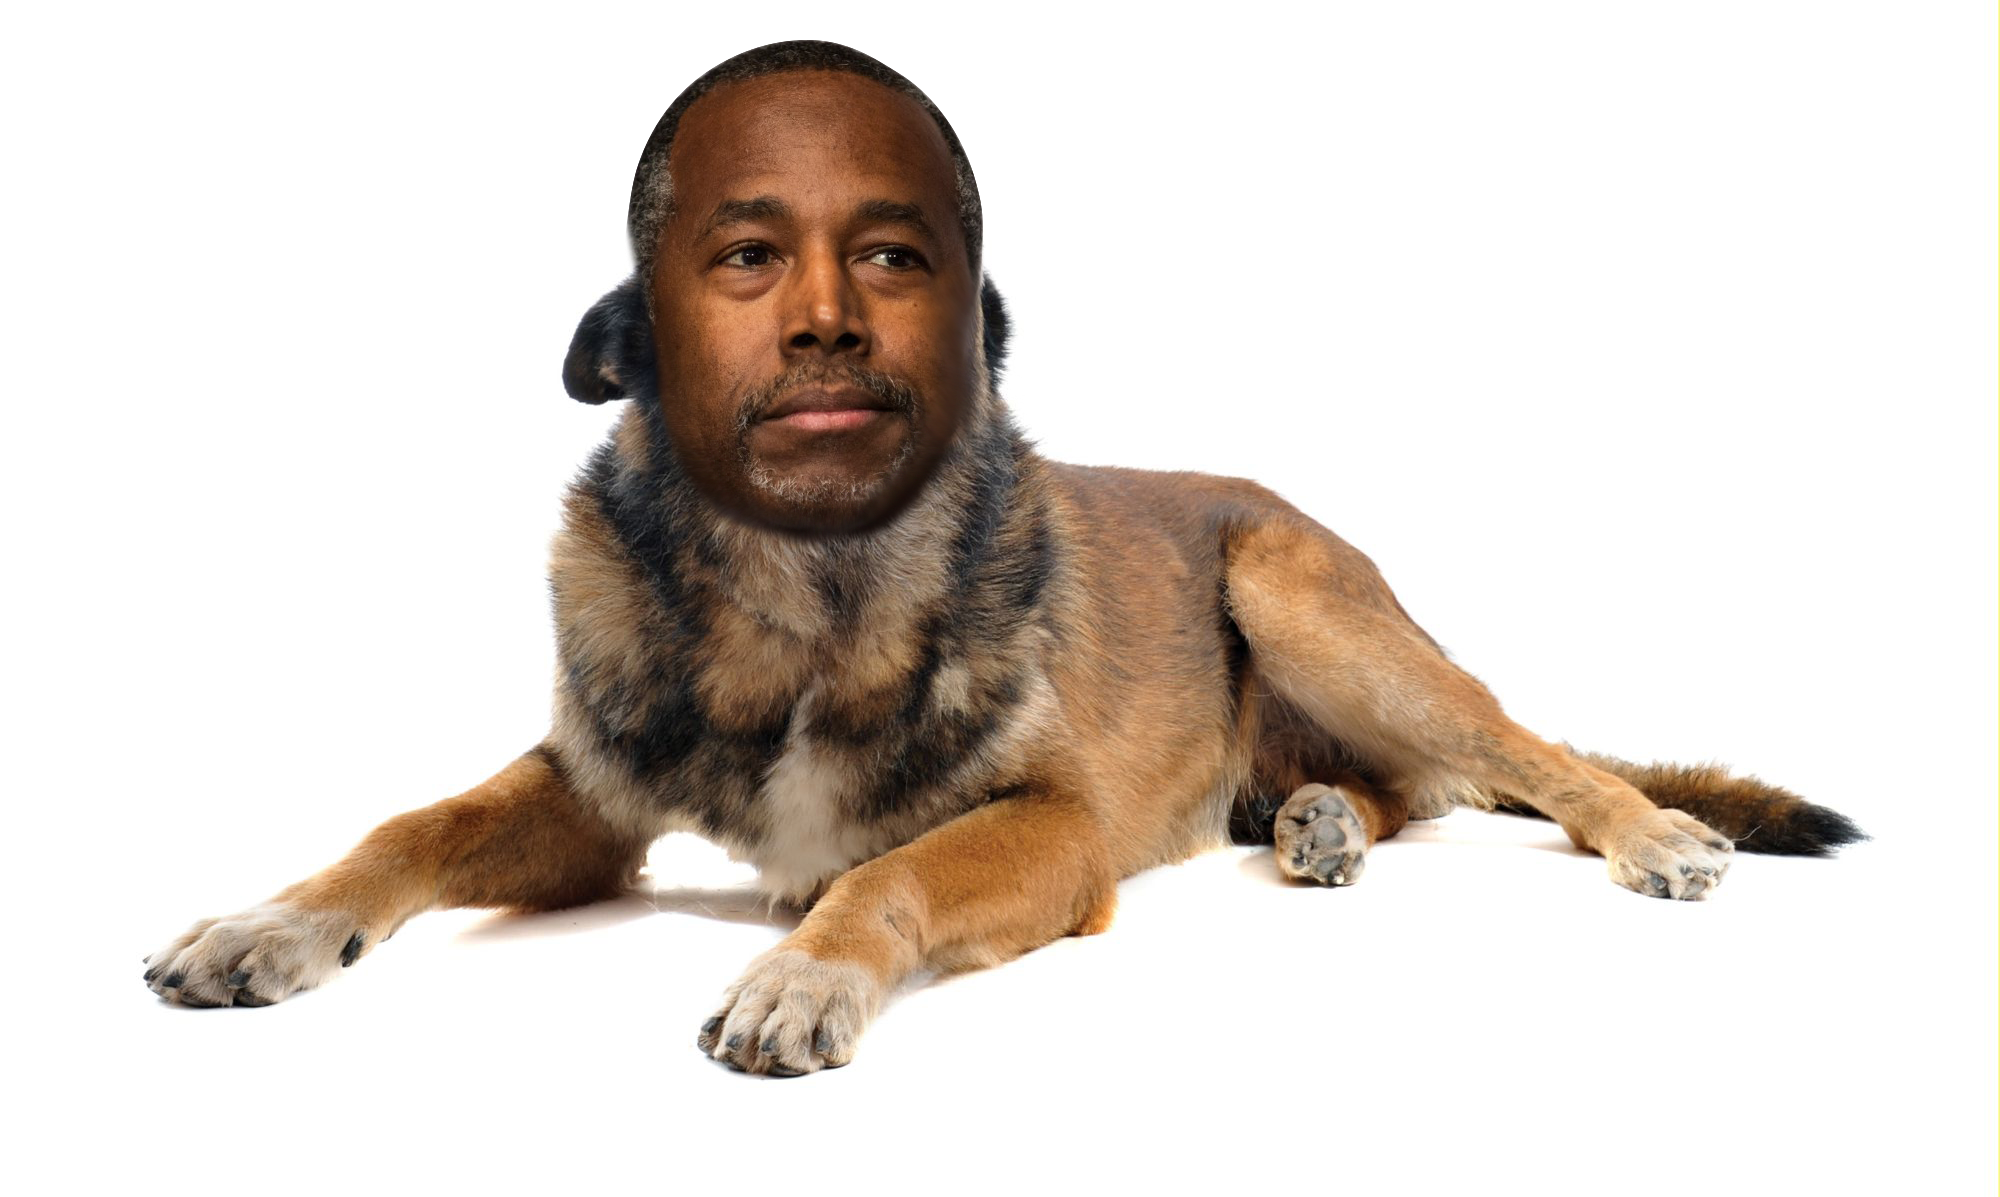 Ben Carson Compared Syrian Refugees To Rabid Dogs This Was My Photoshop Response Personal Protection Dog Dogs Dog Breeds